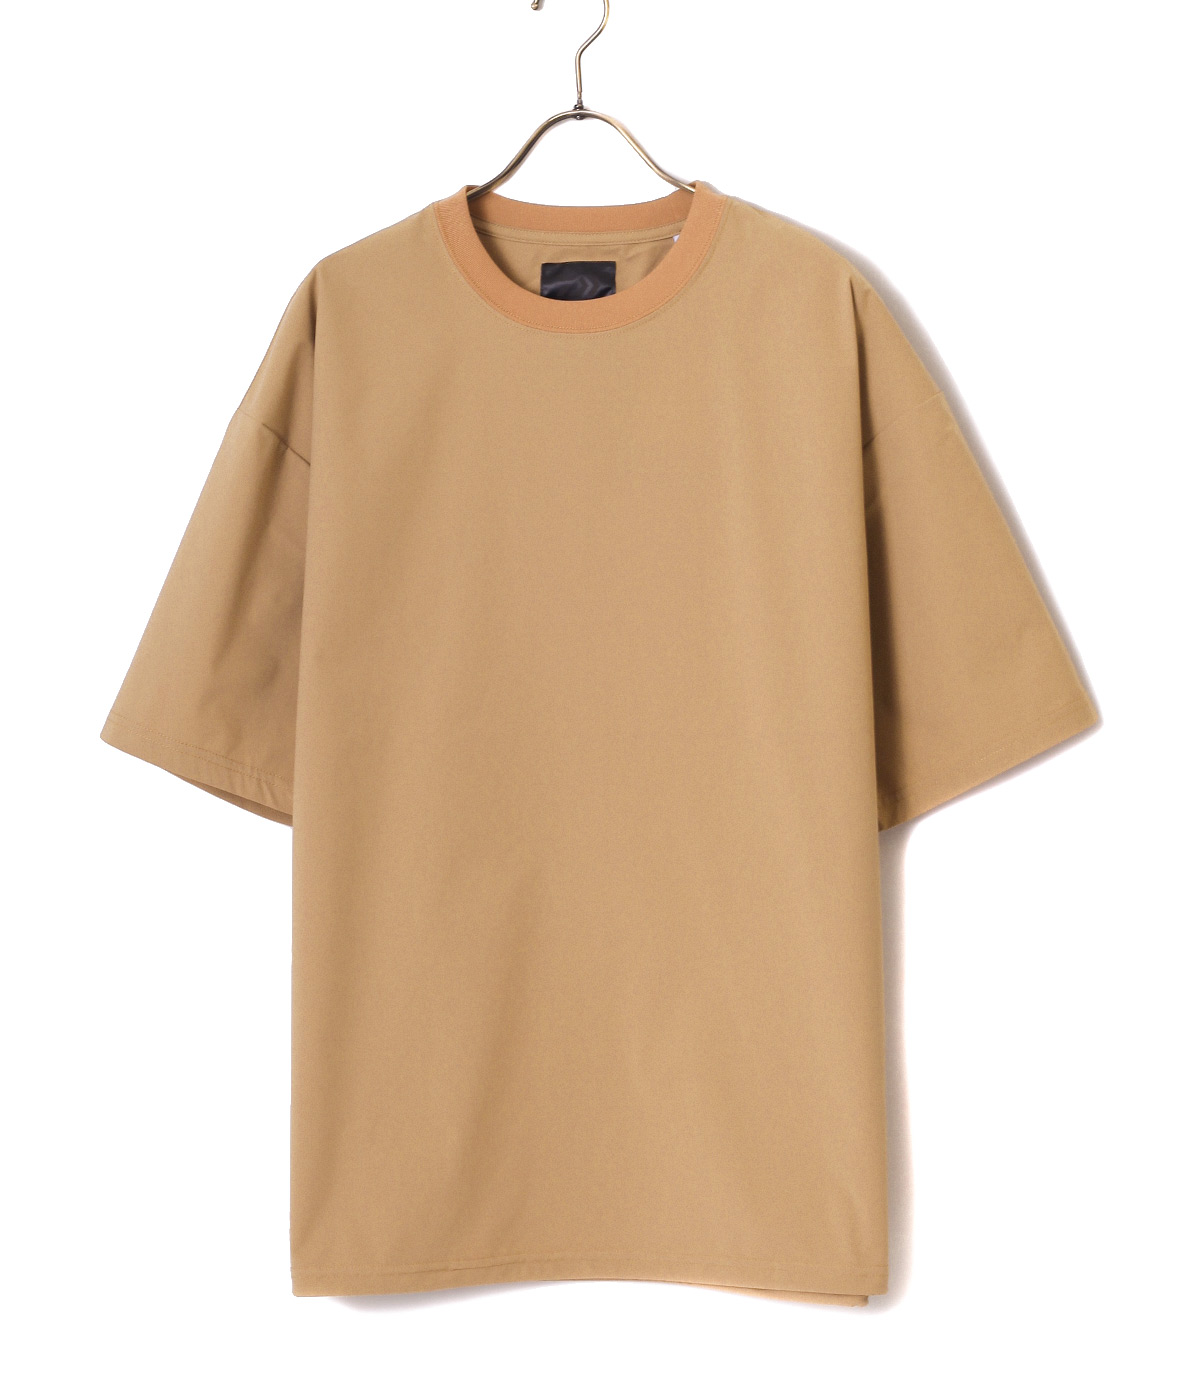 S/S Loose Tech Crew Neck Tee